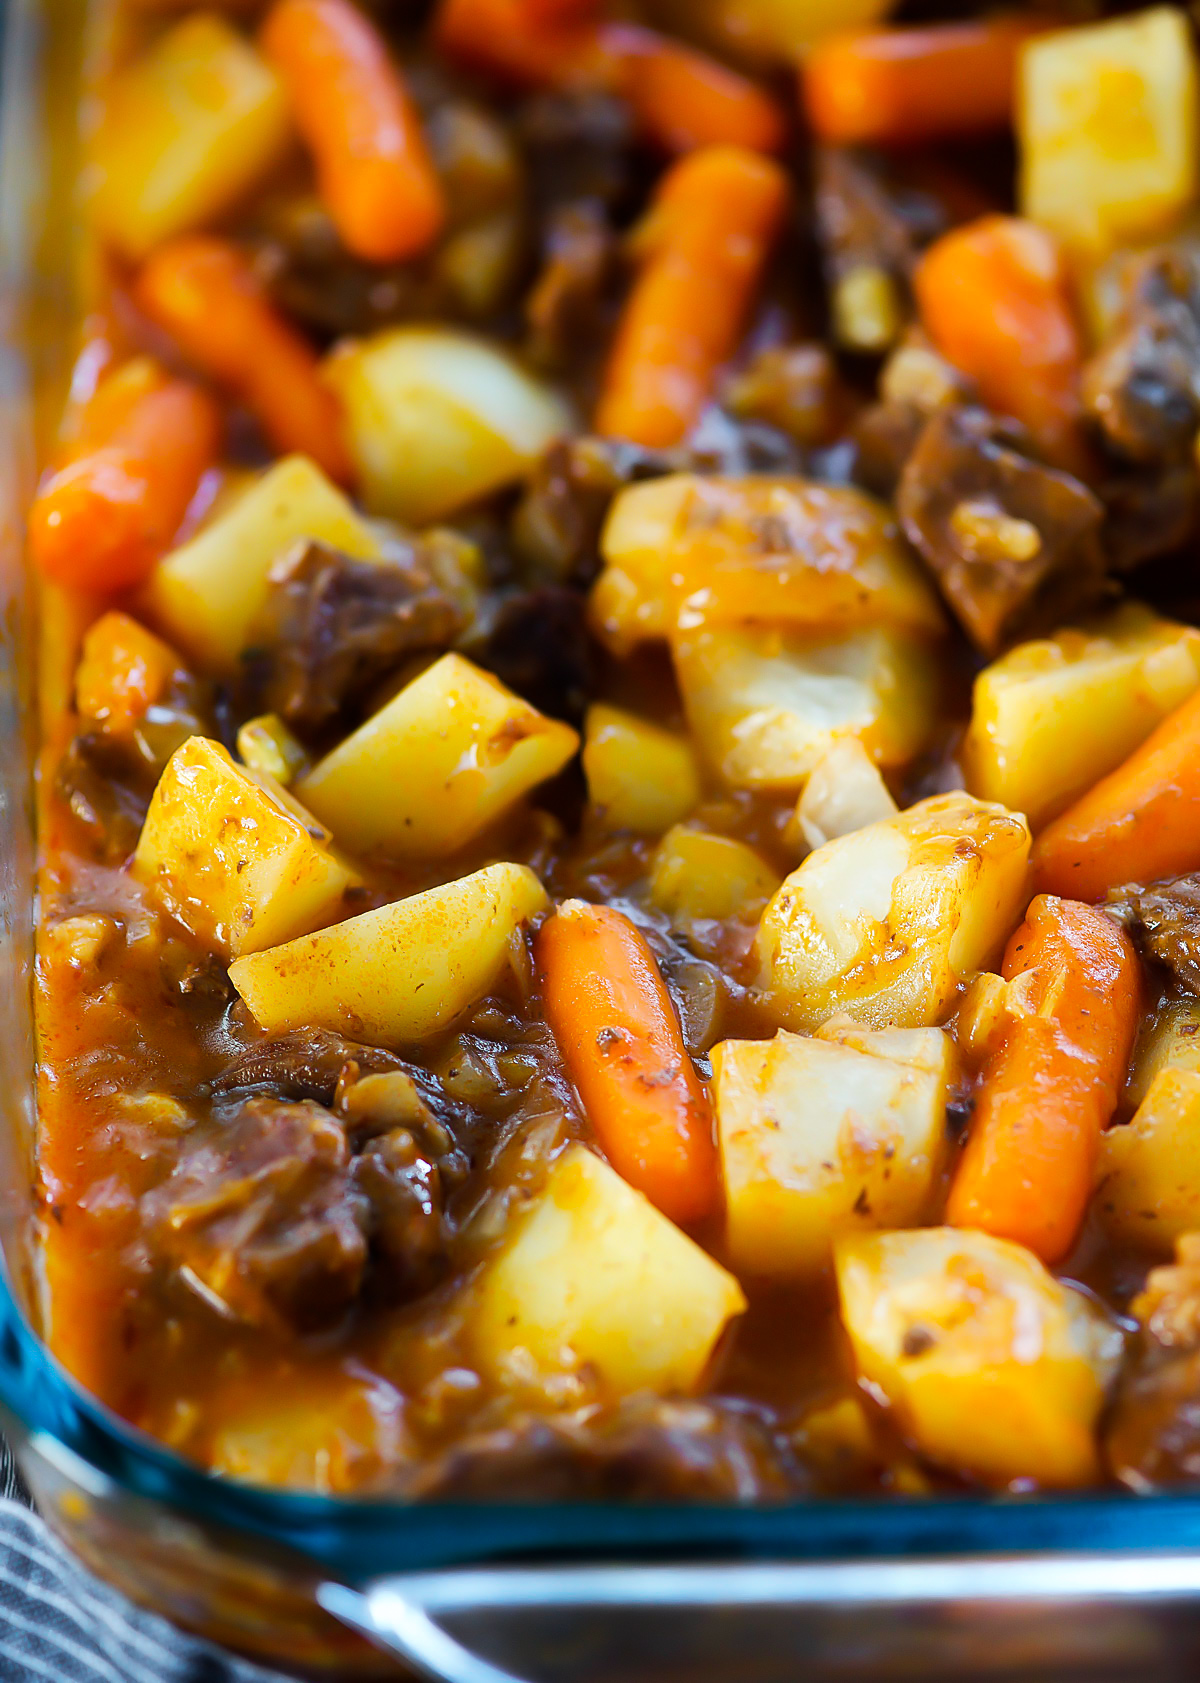 Oven Baked Stew is filled with flavorful beef stew meat, diced potatoes, carrots and onion. Life-in-the-Lofthouse.com